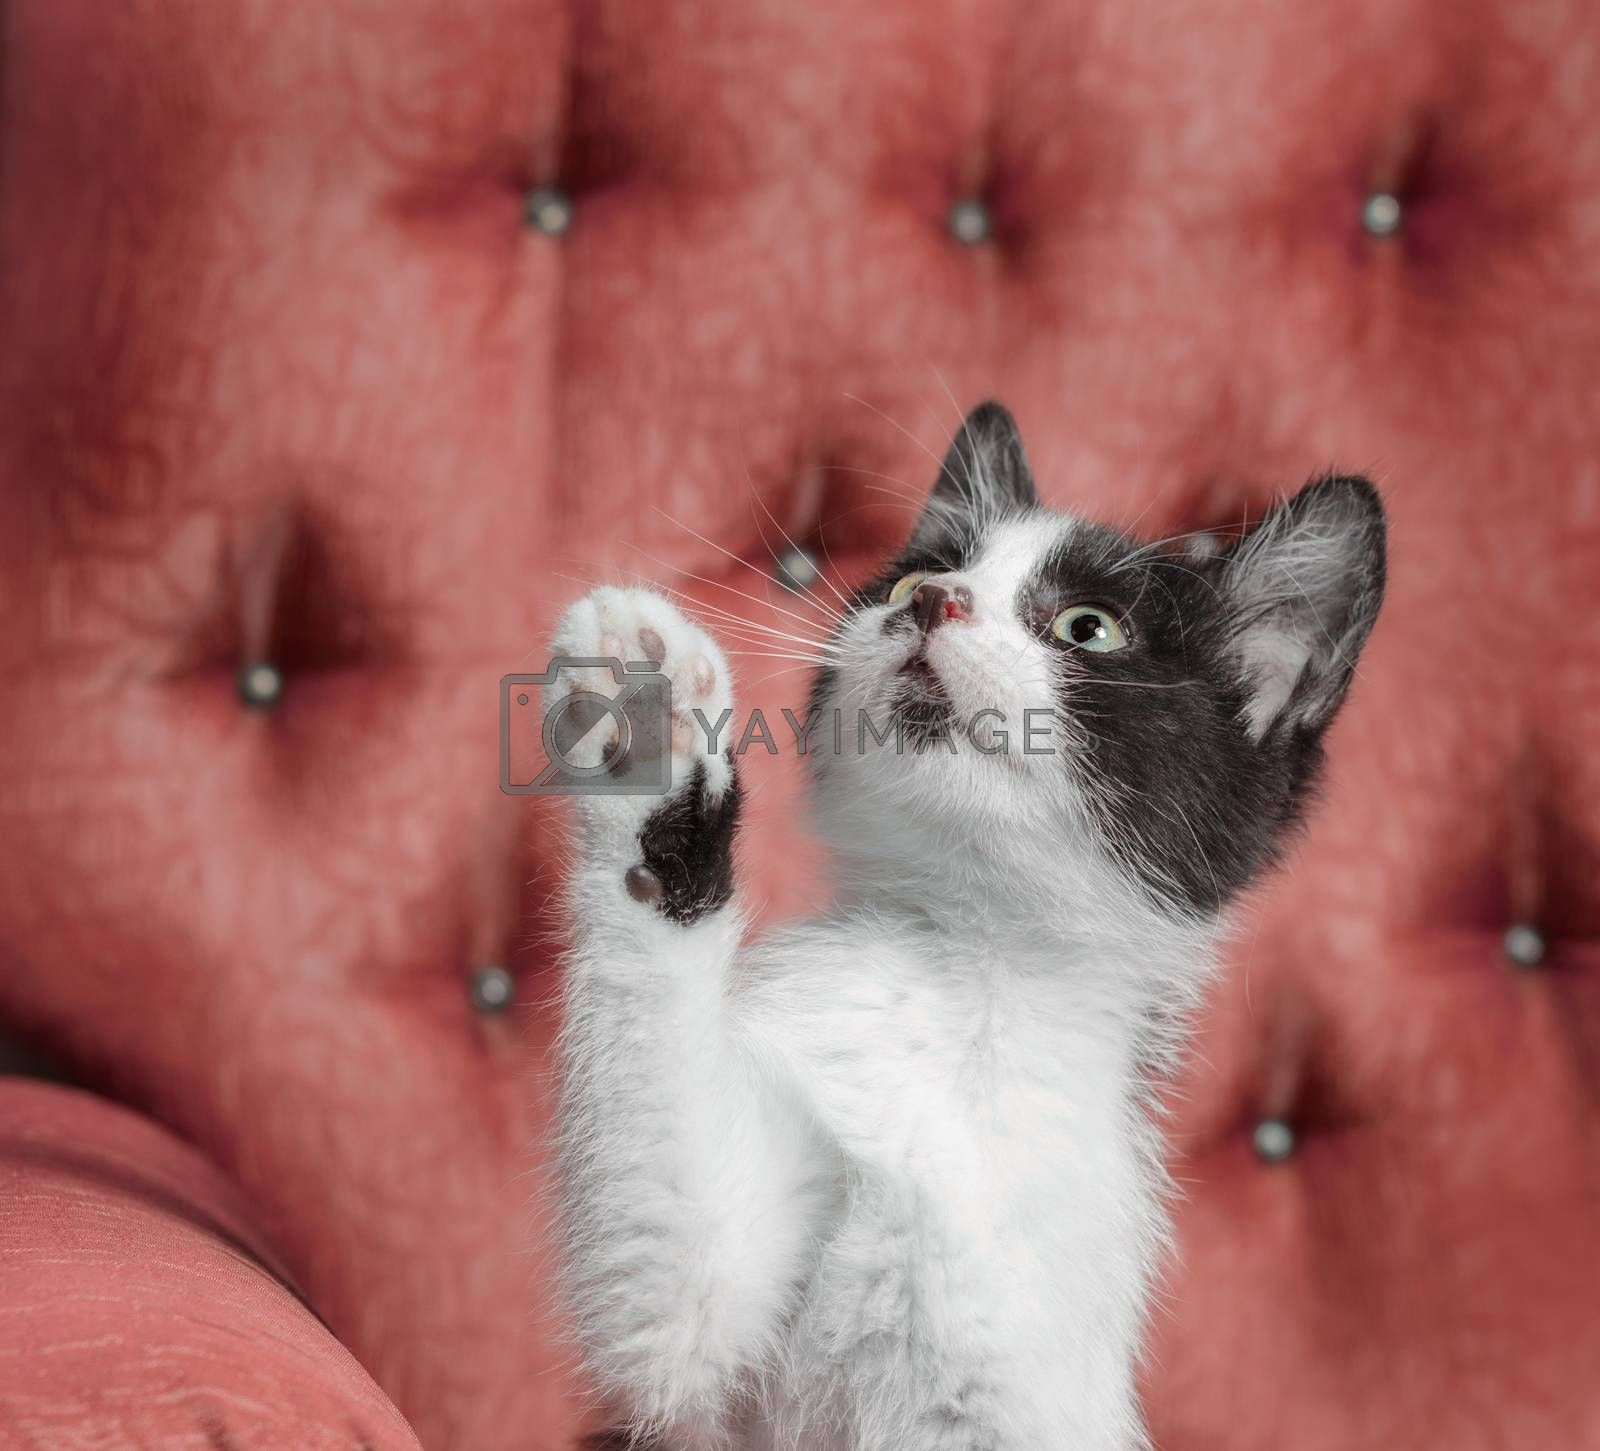 black and white outbred kitten sitting on a red armchair and raised his paw up